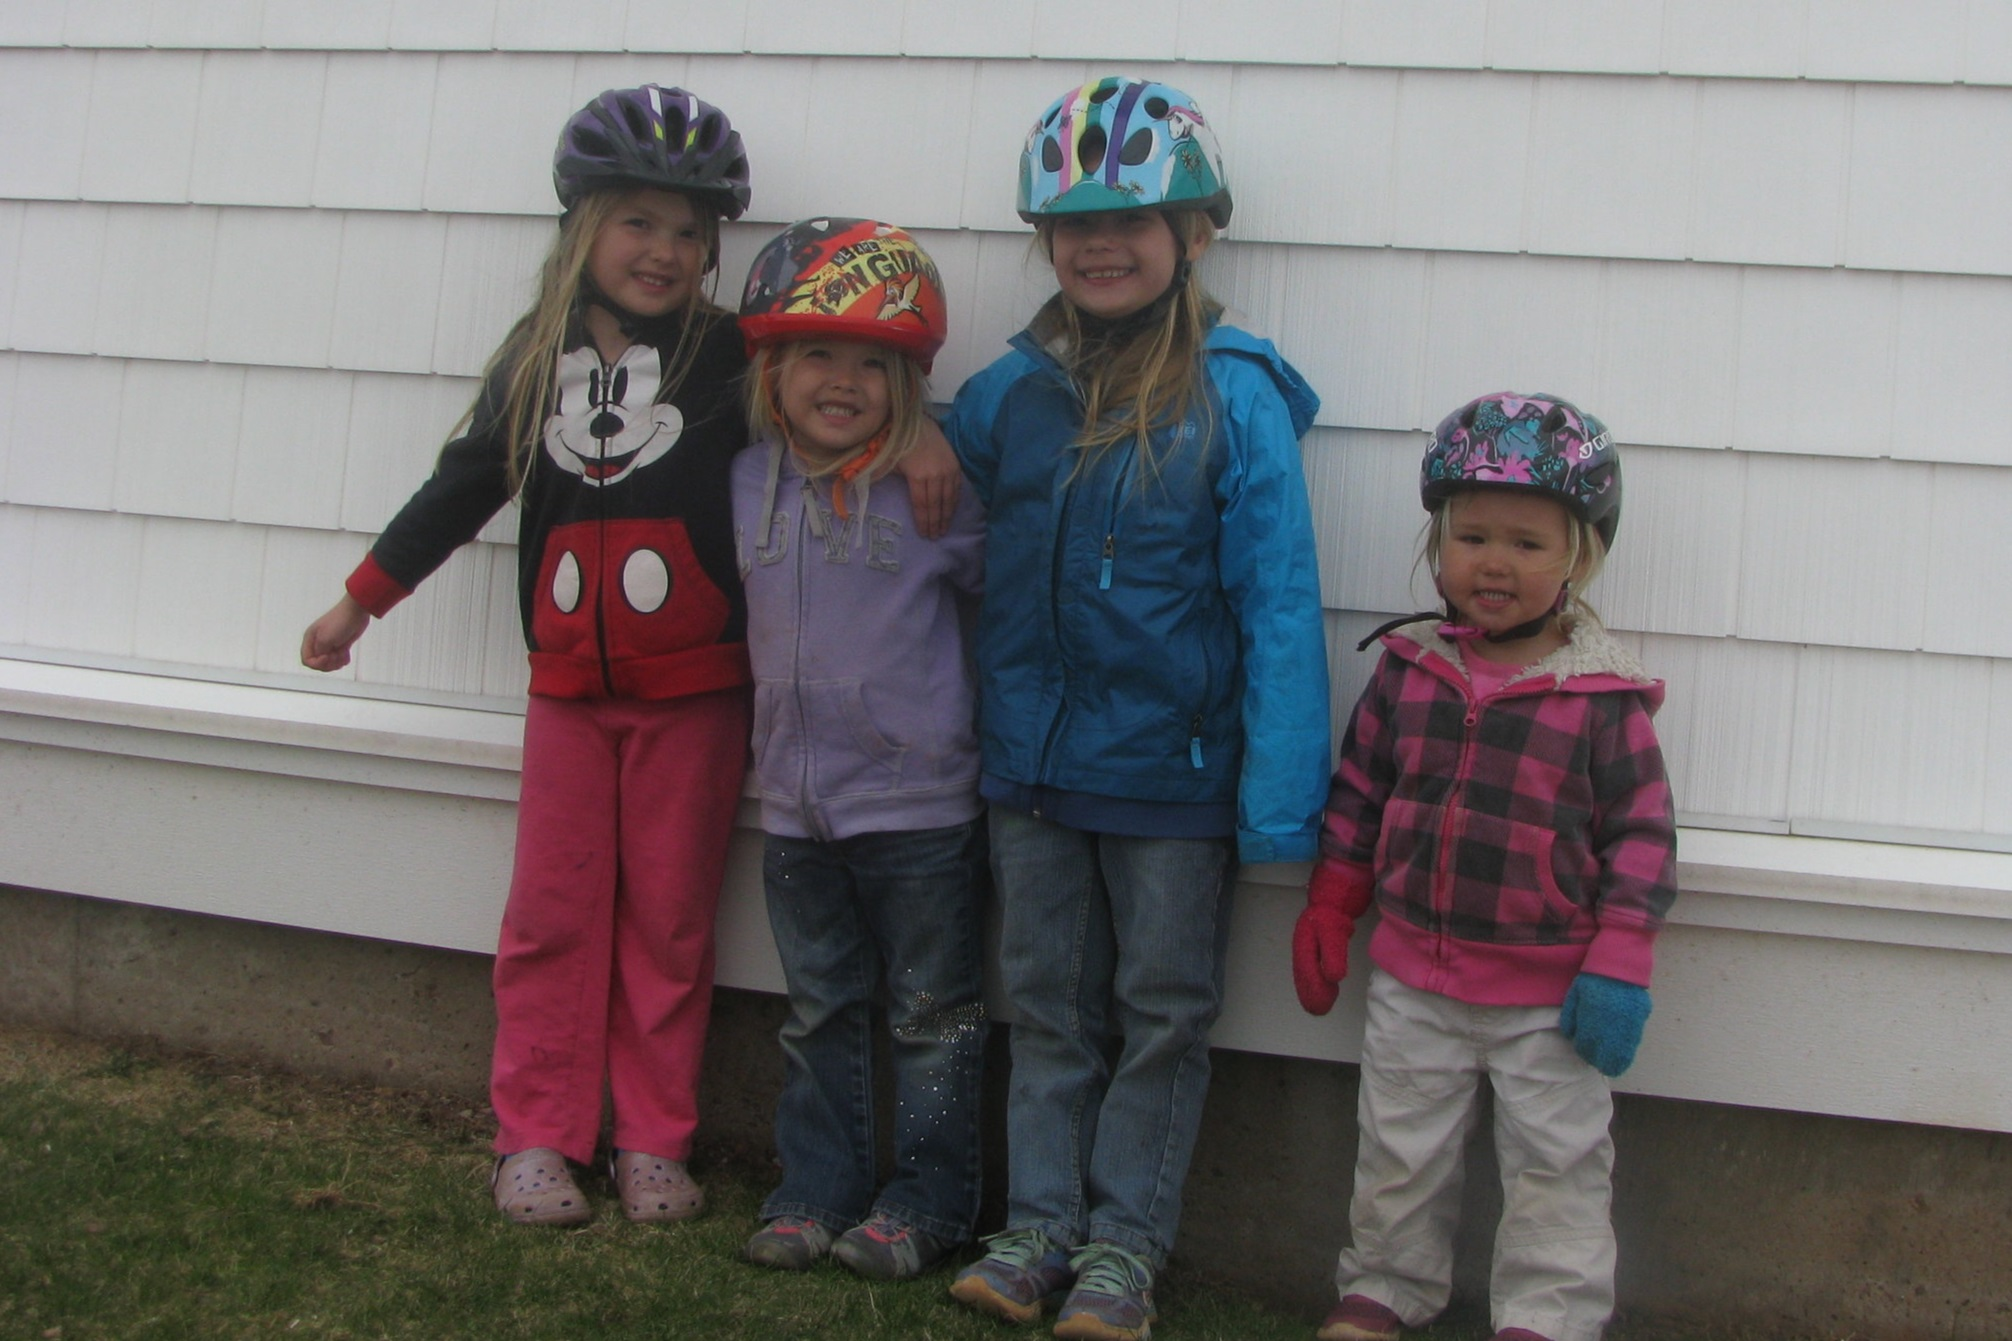 Helmets that fit everyone is a must for safe biking!